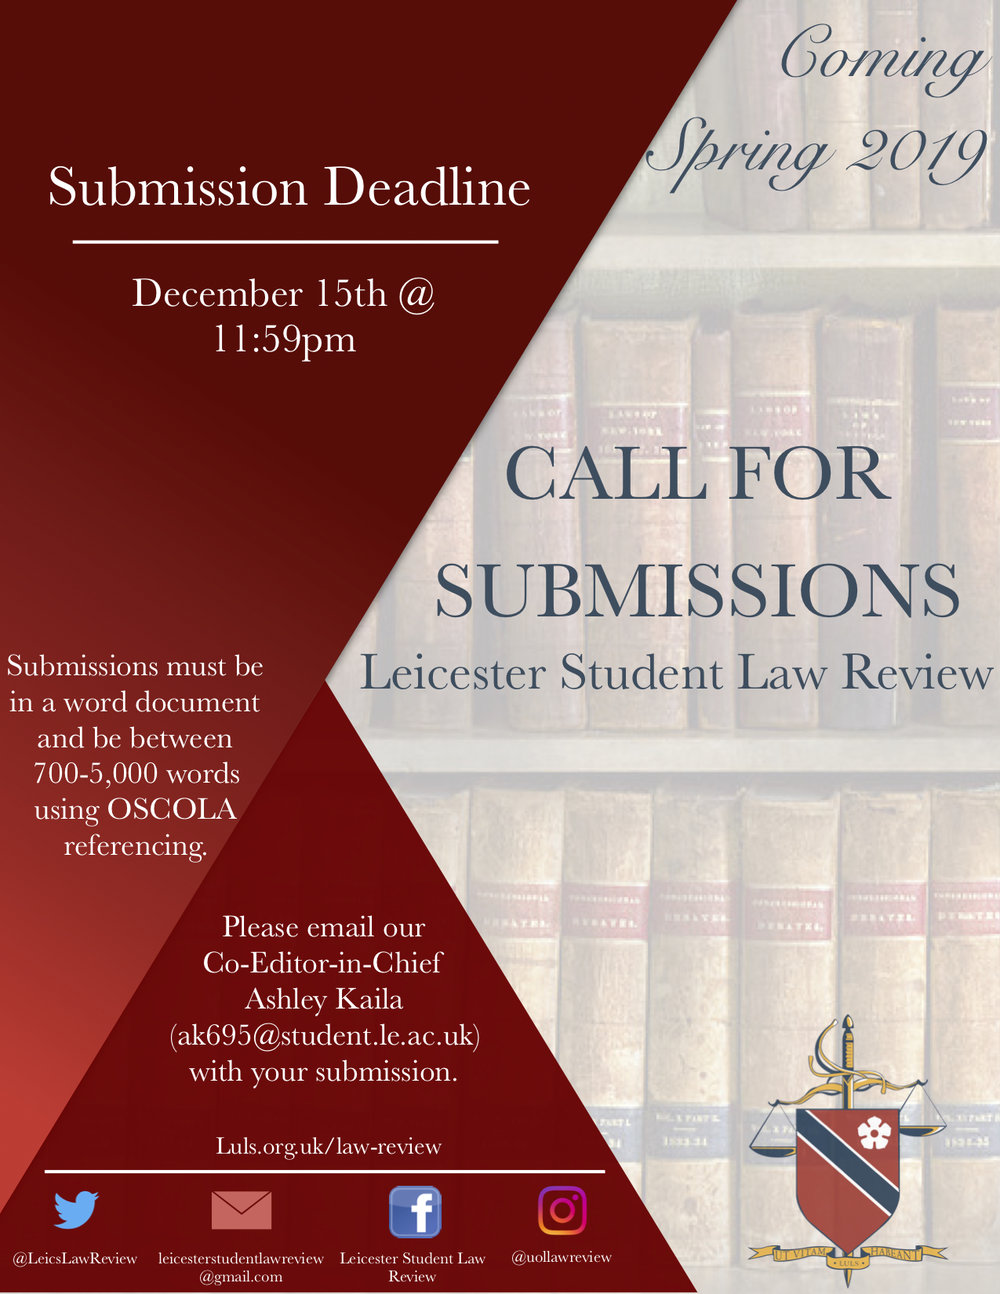 LSLR Call for Submissions Poster.jpg